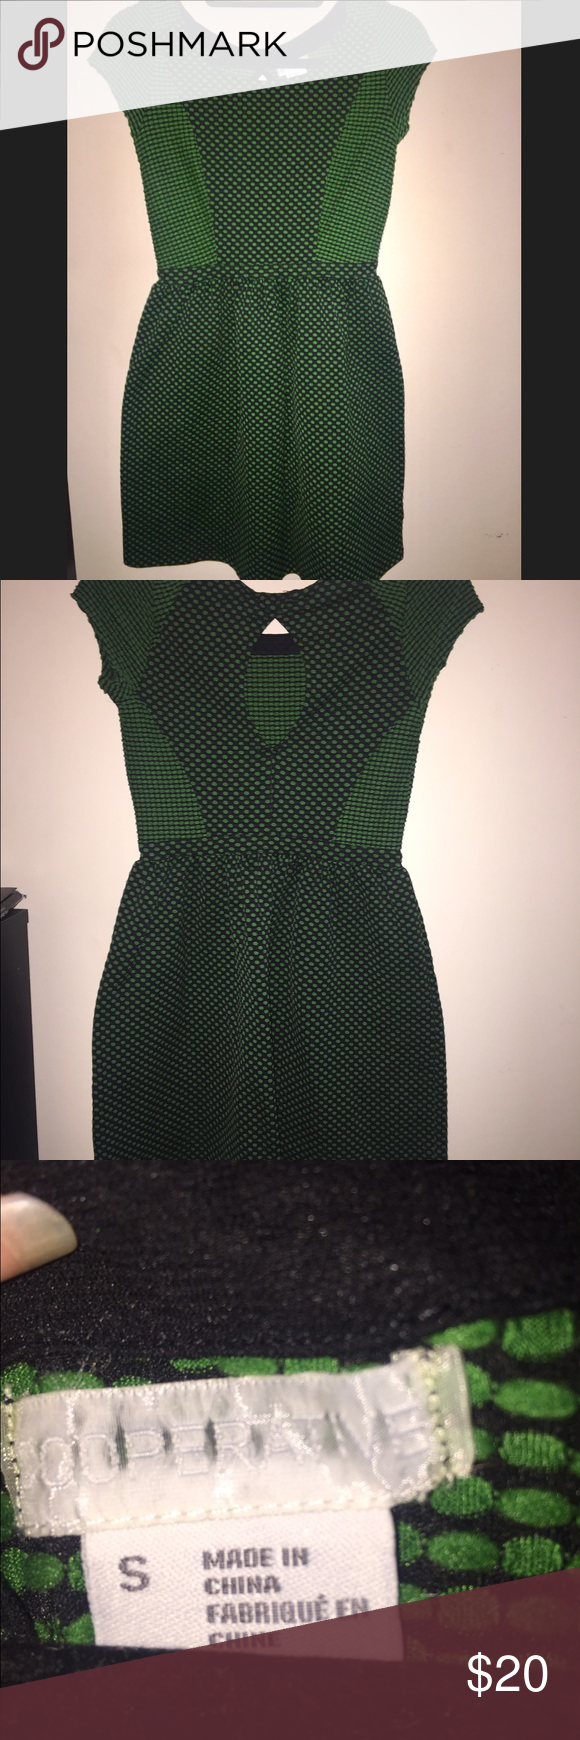 Urban Outfitters Cooperative Green Black Dress Urban Outfitters Cooperative Green and black polka dot dress with a keyhole back in a size small. Super cute with some sandals or heels! Urban Outfitters Dresses Mini